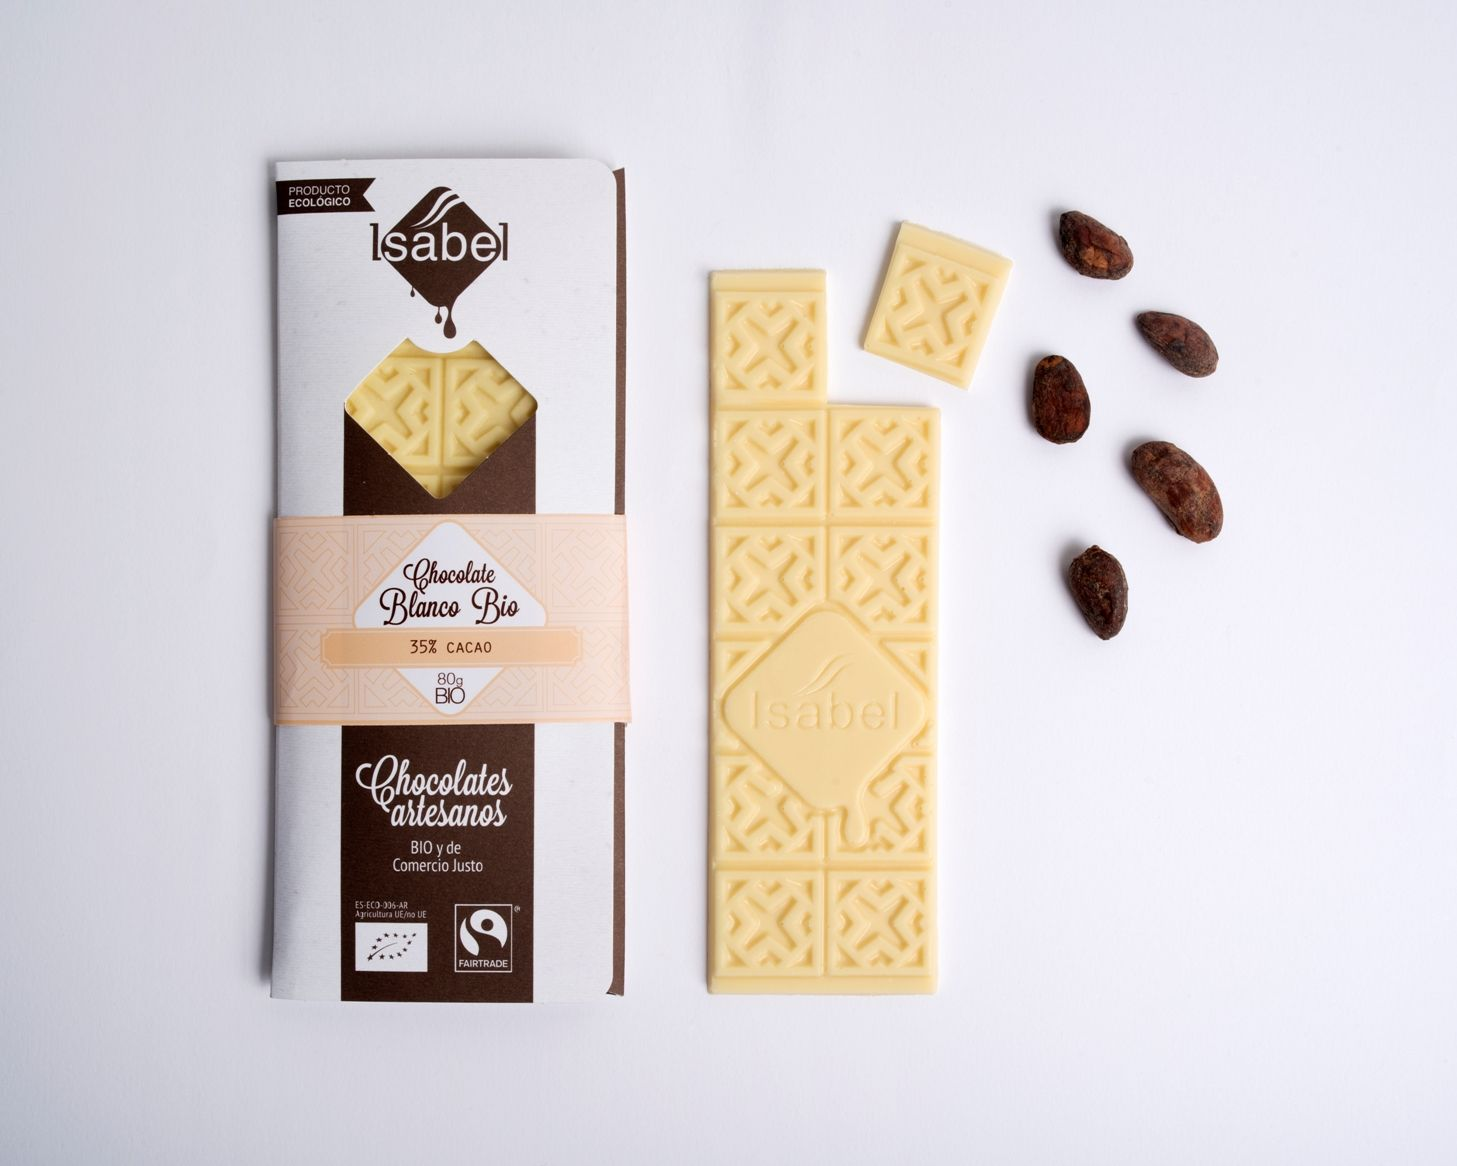 Tableta de chocolate blanco 35% cacao